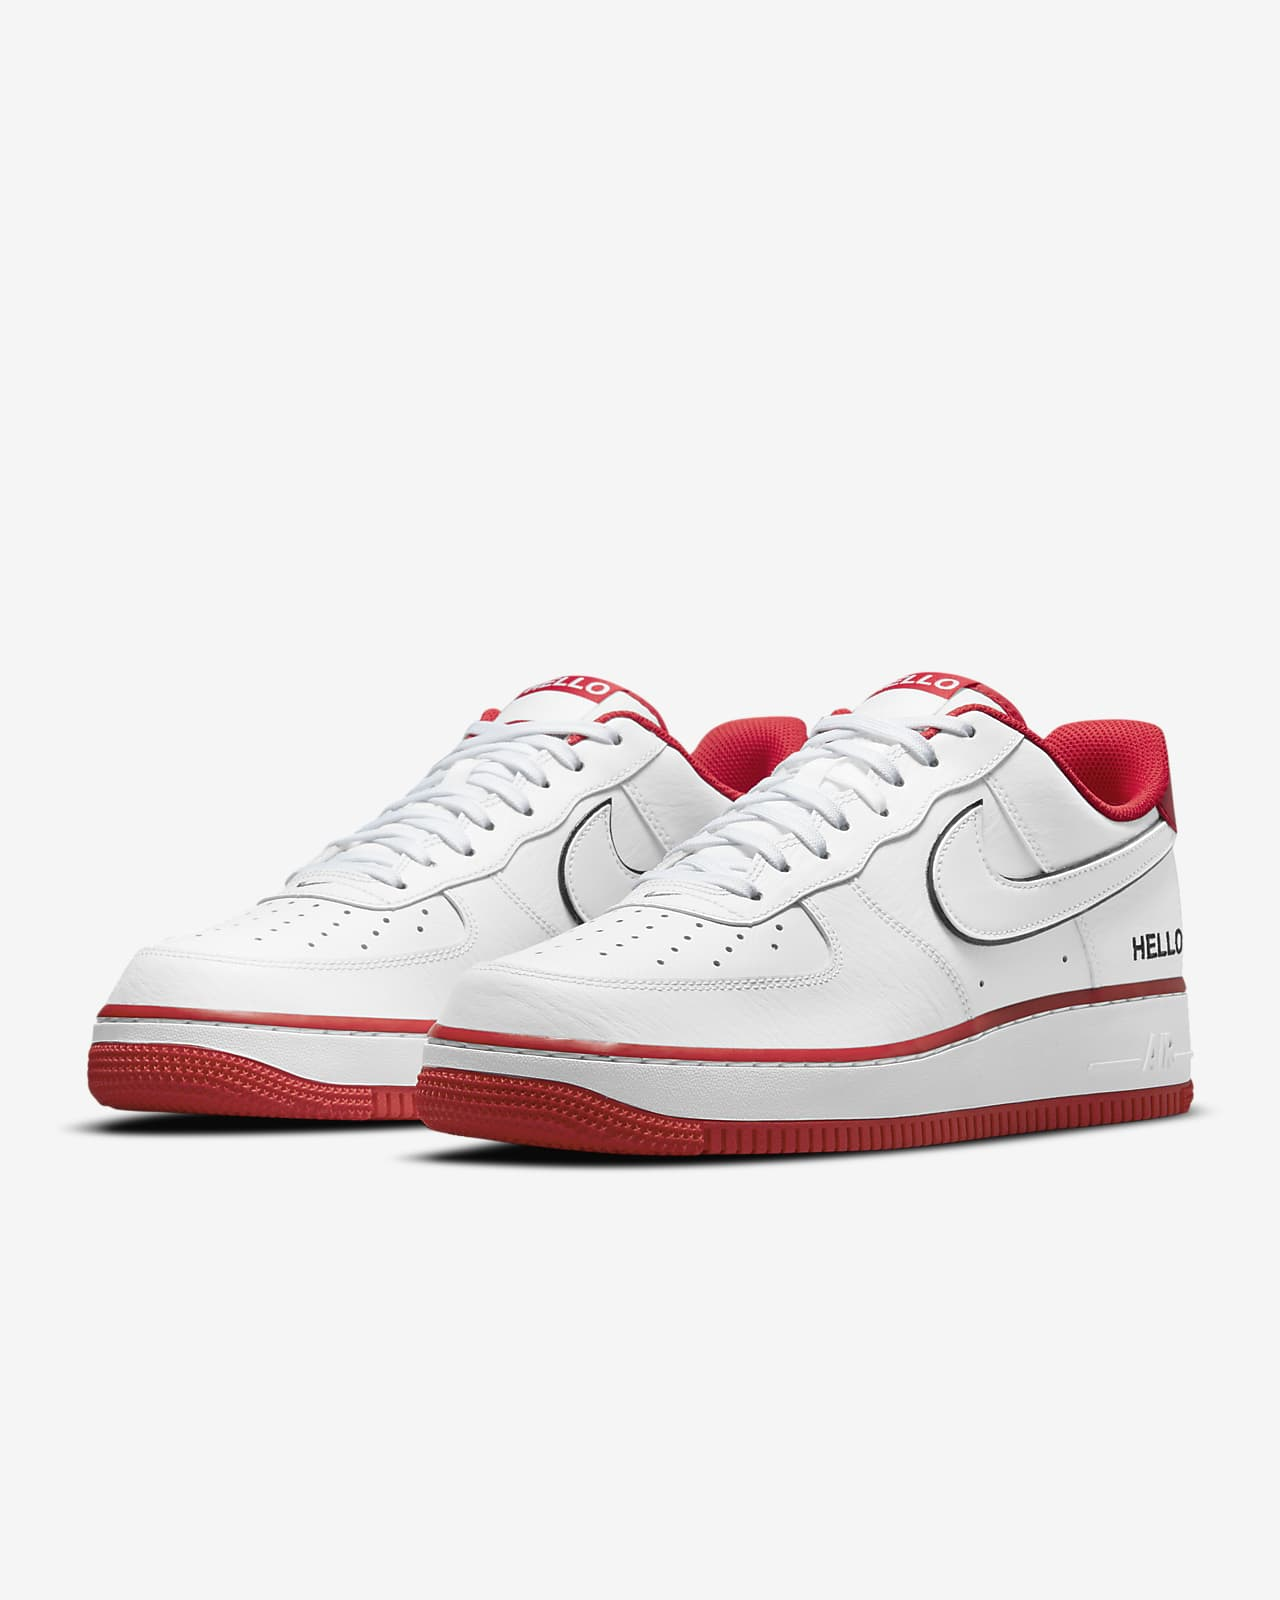 Nike Air Force 1 '07 LX Men's Shoes